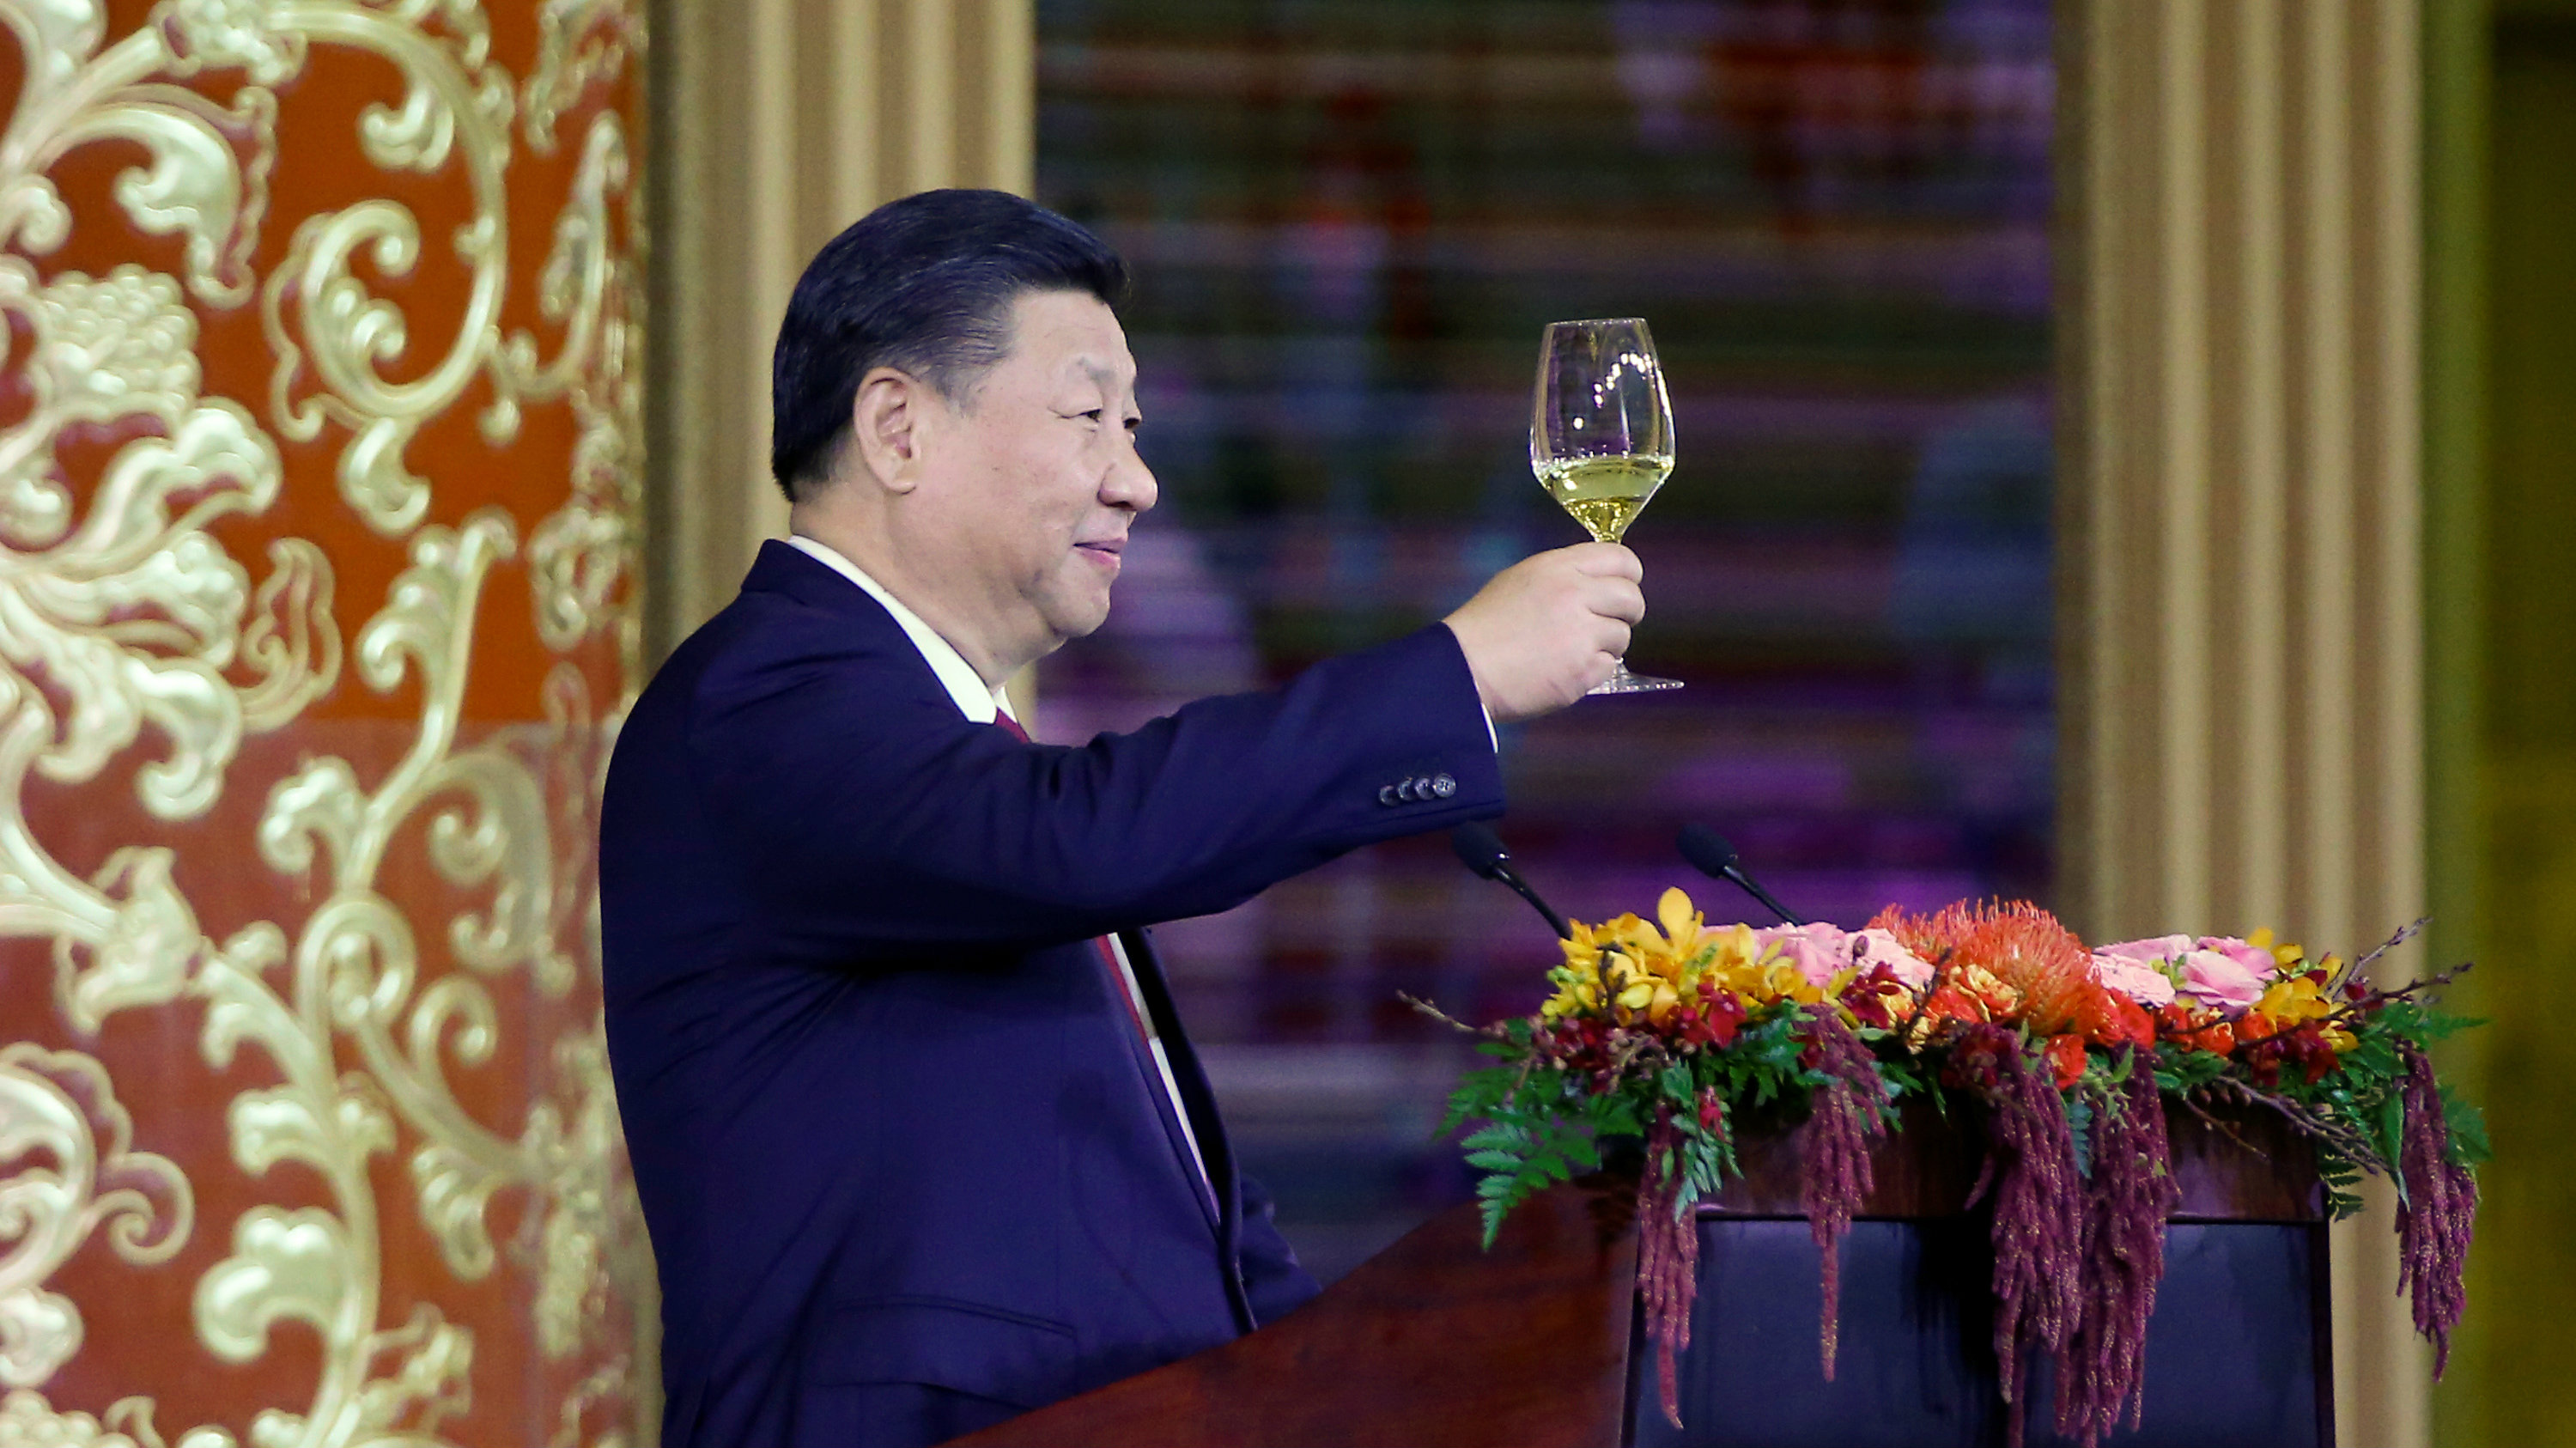 China's President Xi Jinping delivers a toast at a state dinner